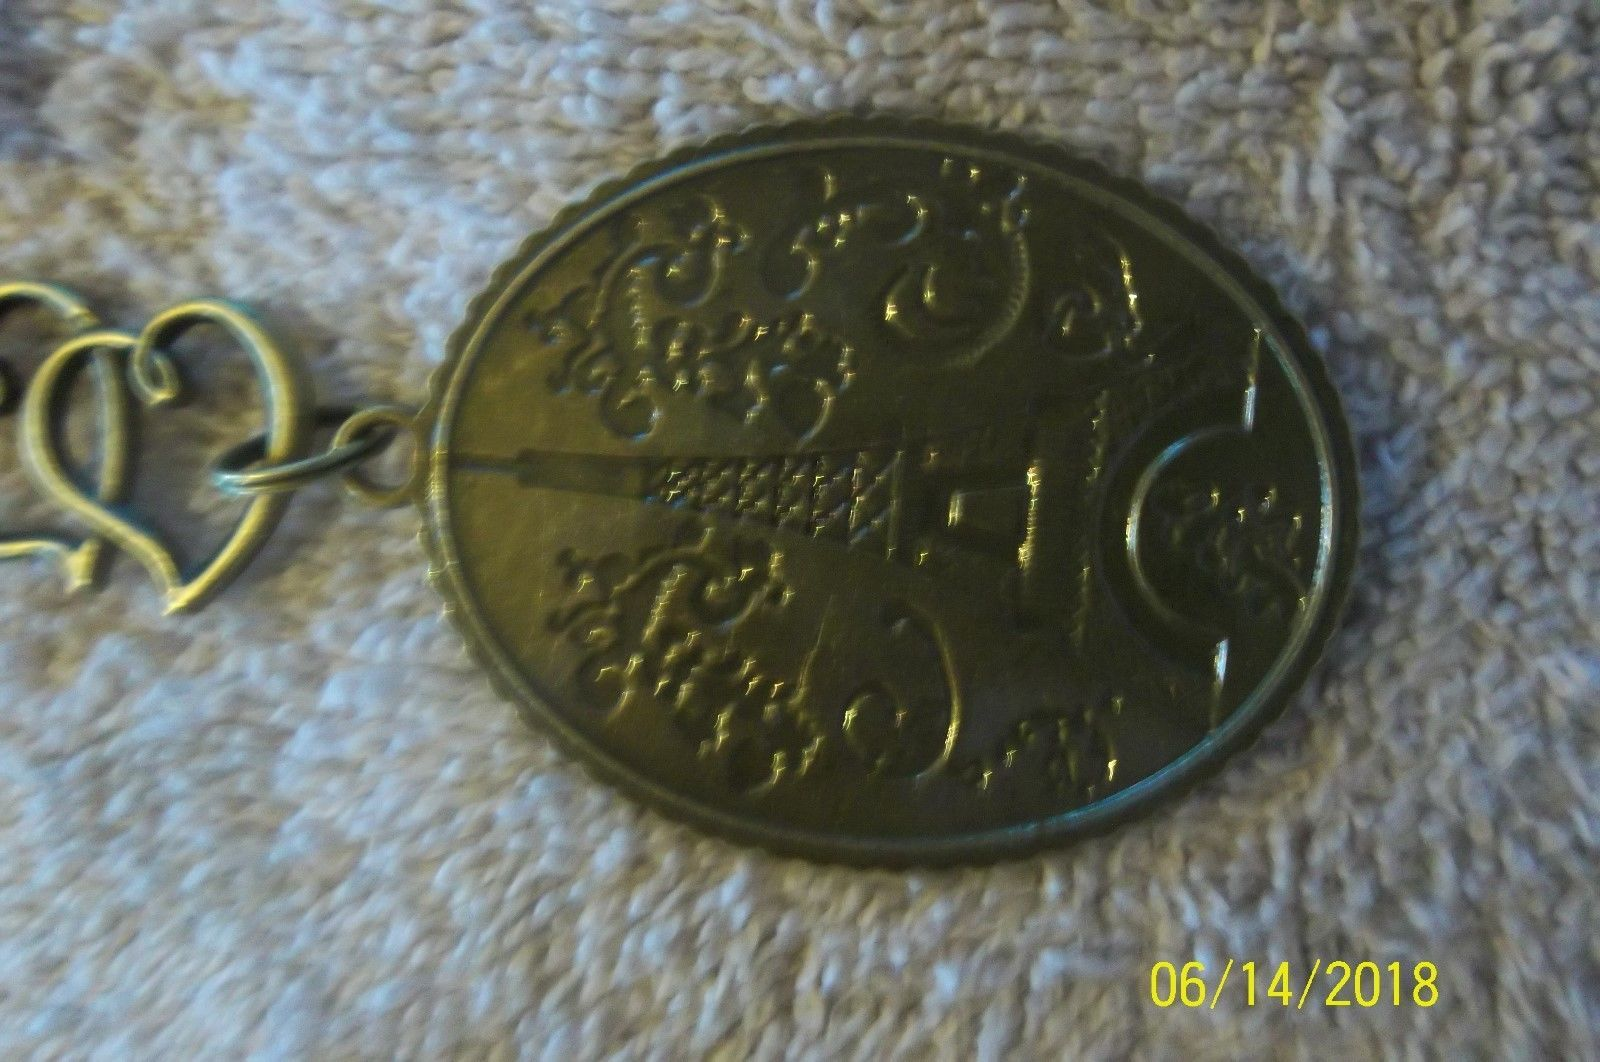 # purse jewelry bronze color keychain backpack  dangle charms #17 lot of 2 image 4